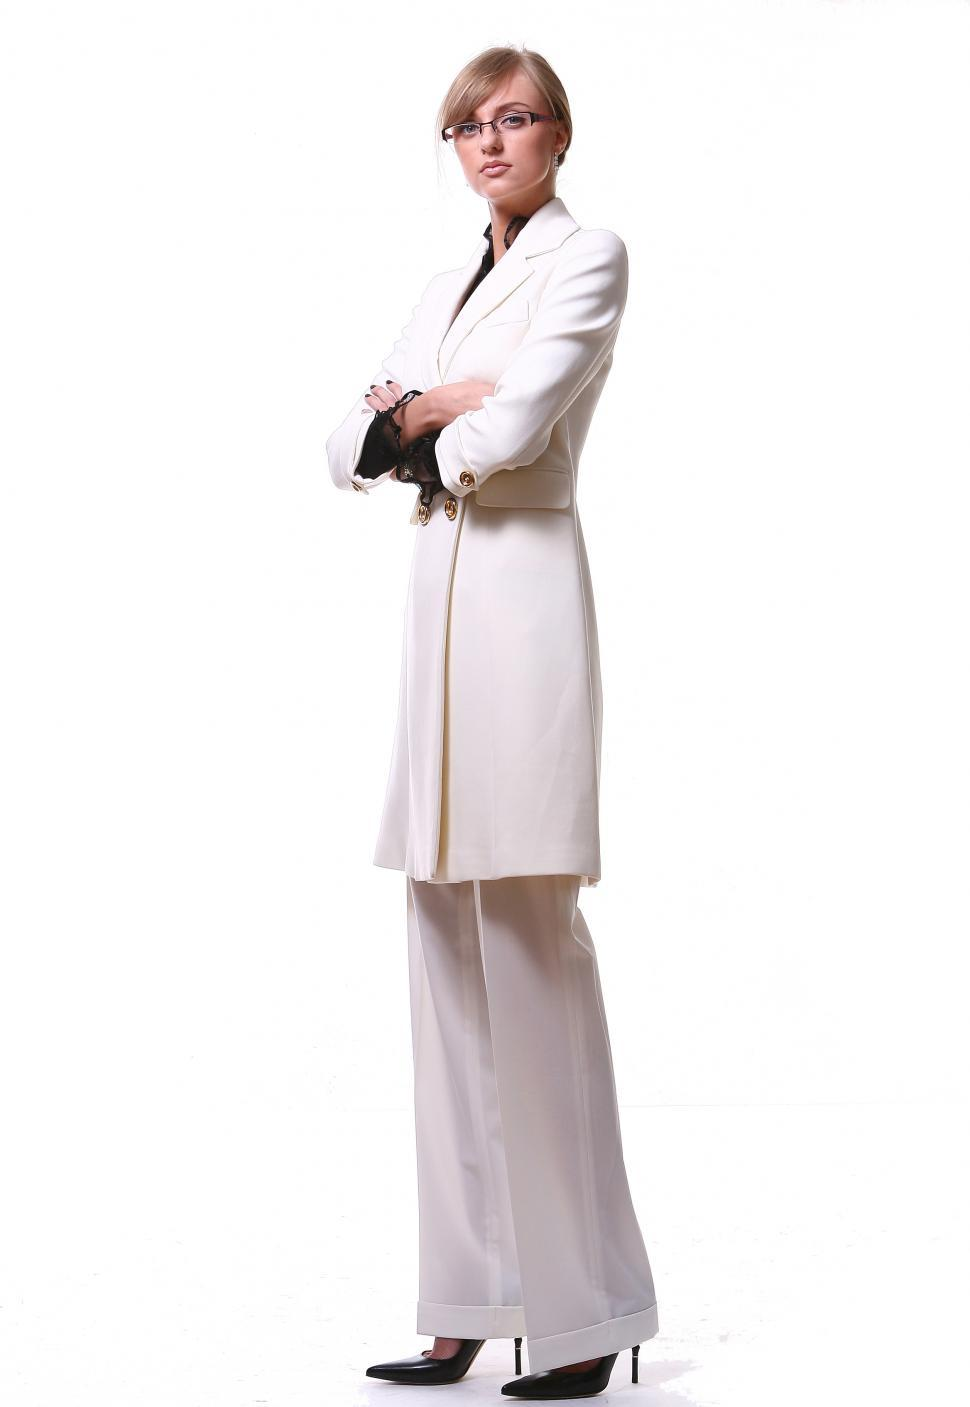 Download Free Stock HD Photo of beautiful blond business woman, white clothes Online